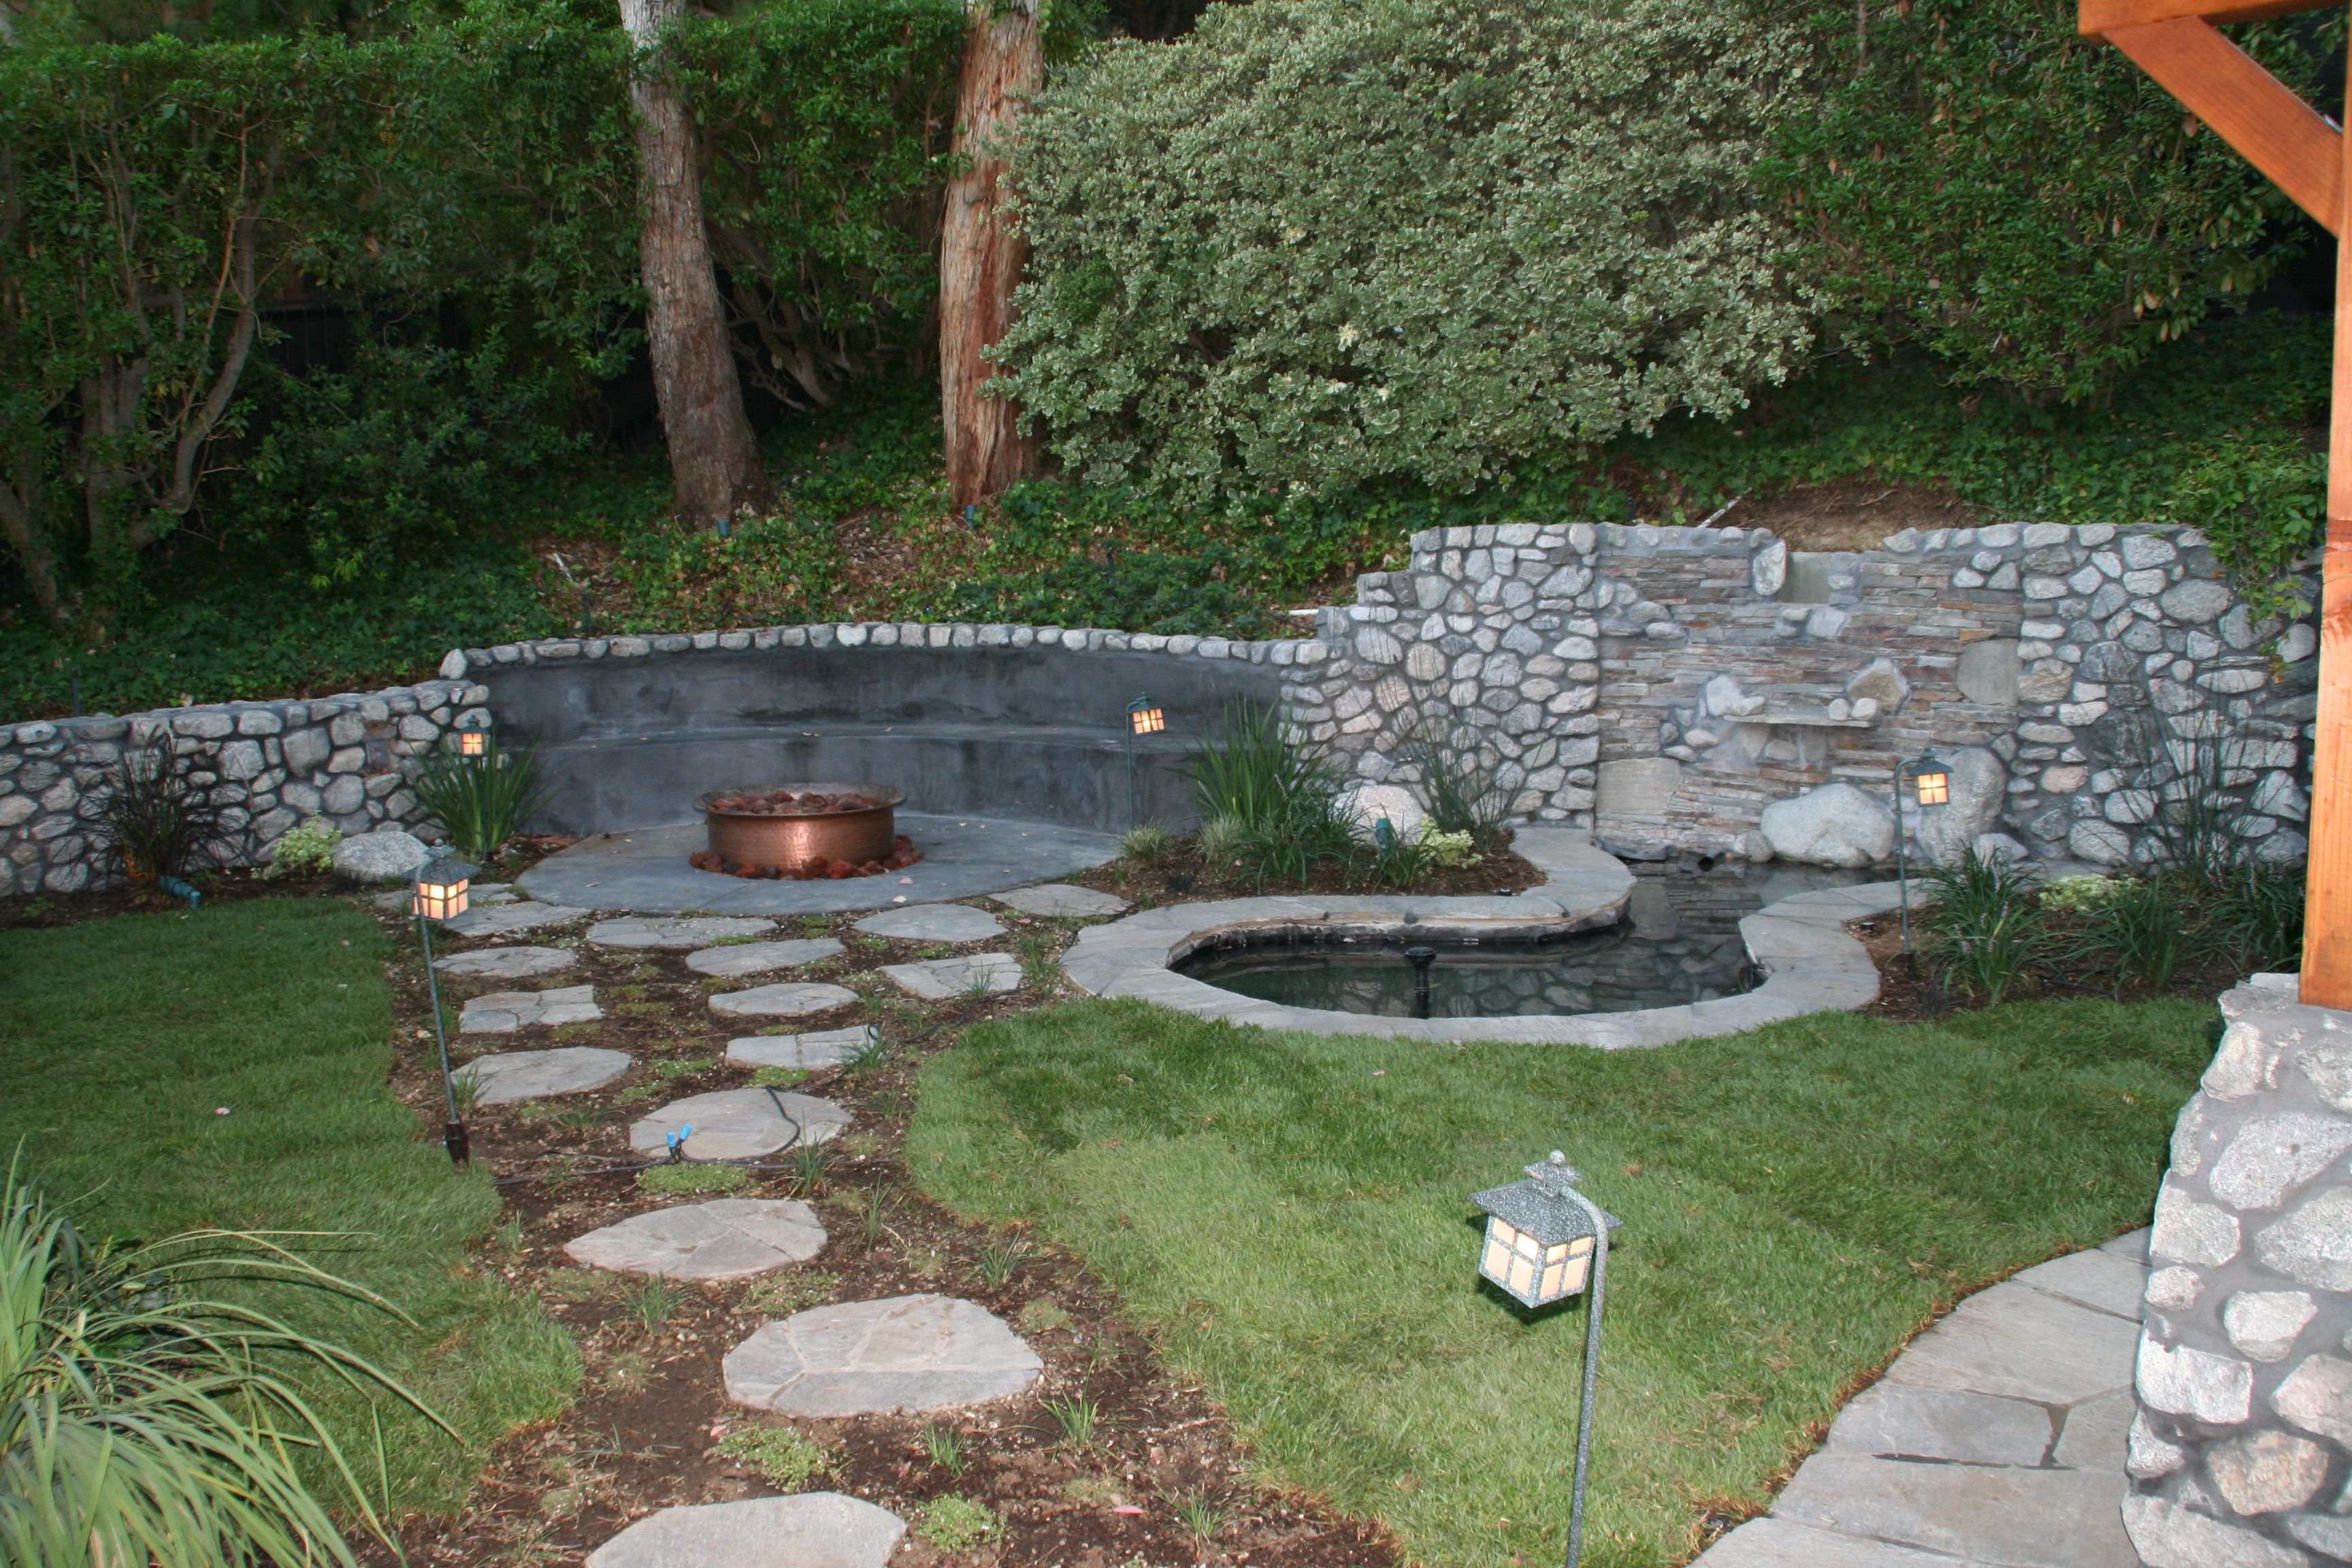 Love This Small Backyard Design Copper Fire Pit Pond With Waterfall Very Peaceful Waterfall Landscaping Backyard Ponds Backyard